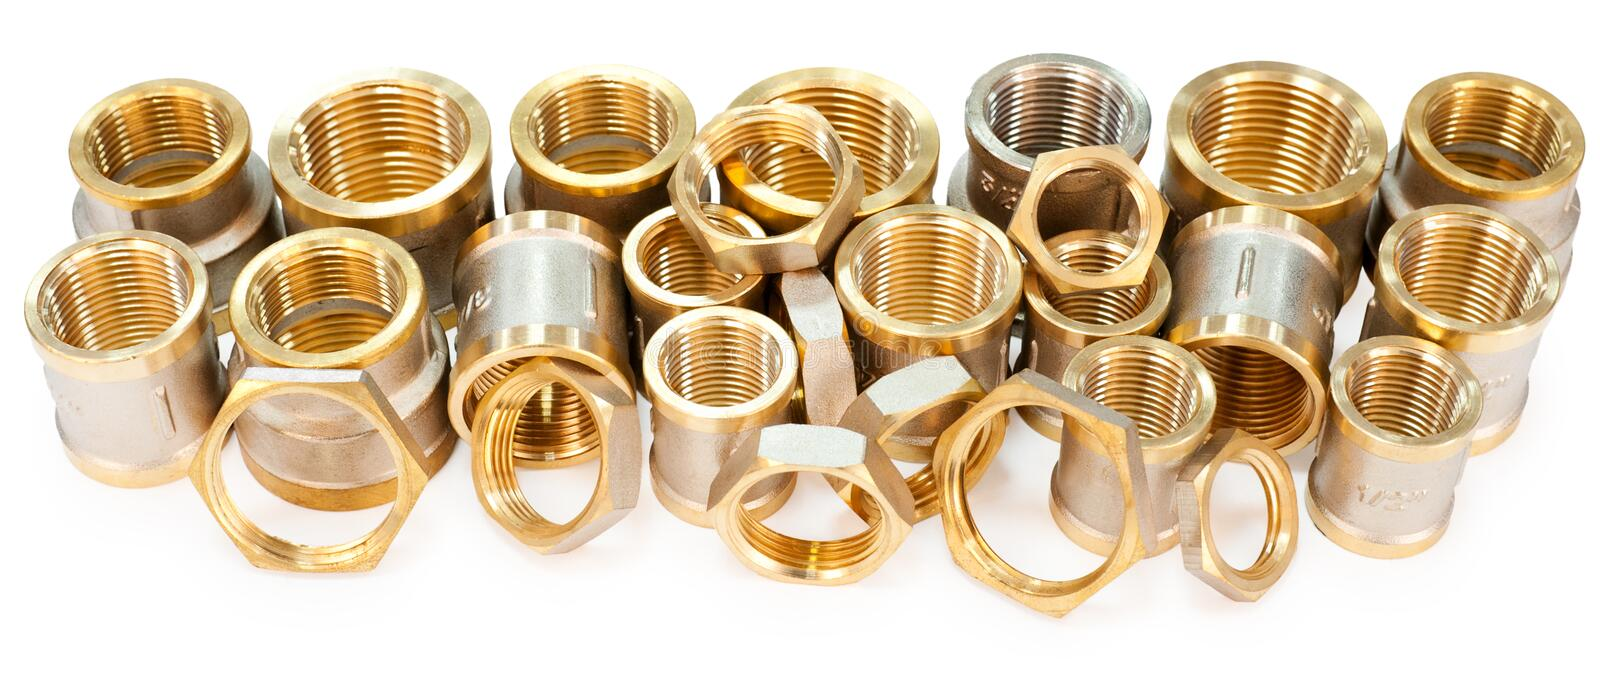 Many fittings royalty free stock photography